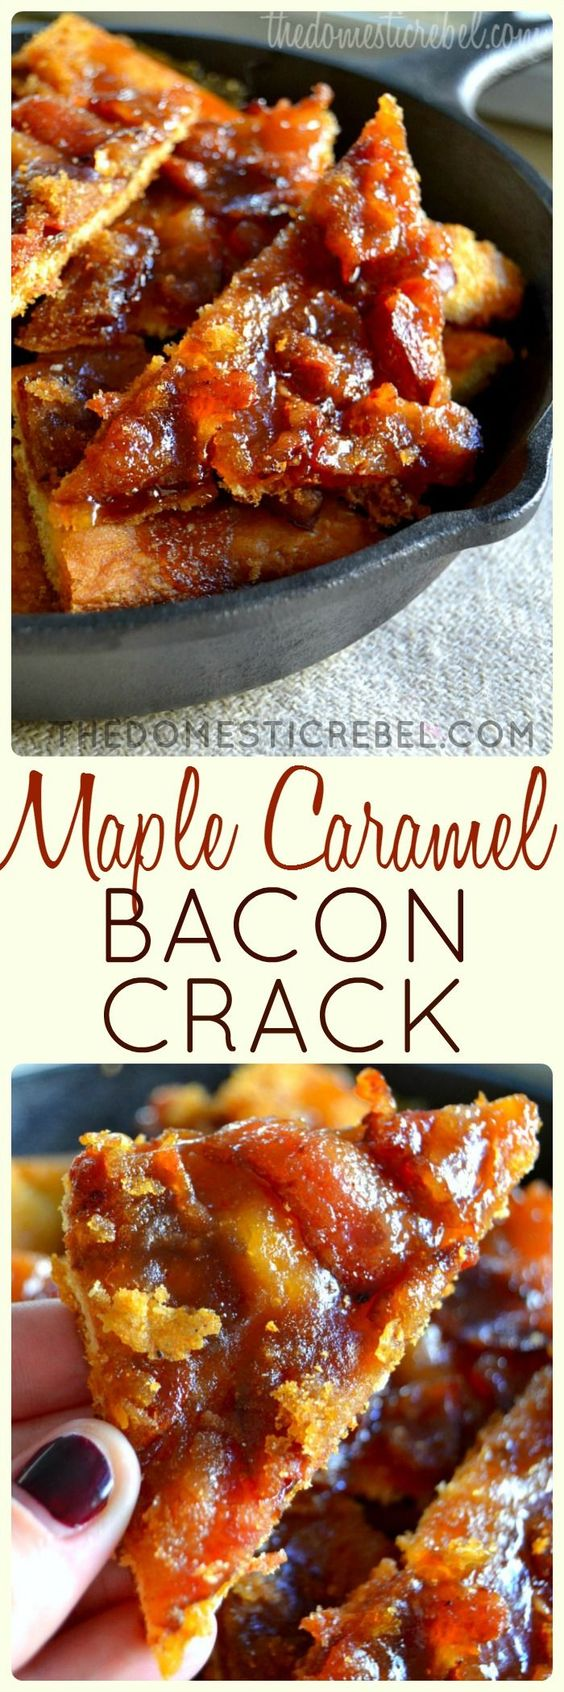 Maple Caramel Bacon Crack Recipe | the domestic REBEL - The Best Easy Party Appetizers and Finger Foods Recipes - Quick family friendly snacks for Holidays, Tailgating and Super Bowl Parties! #horsdoeuvres #appetizers #fingerfoods #tapas #partyfood #christmaspartyfood #newyearsevepartyfood #newyearseve #tailgating #superbowl #easyappetizers